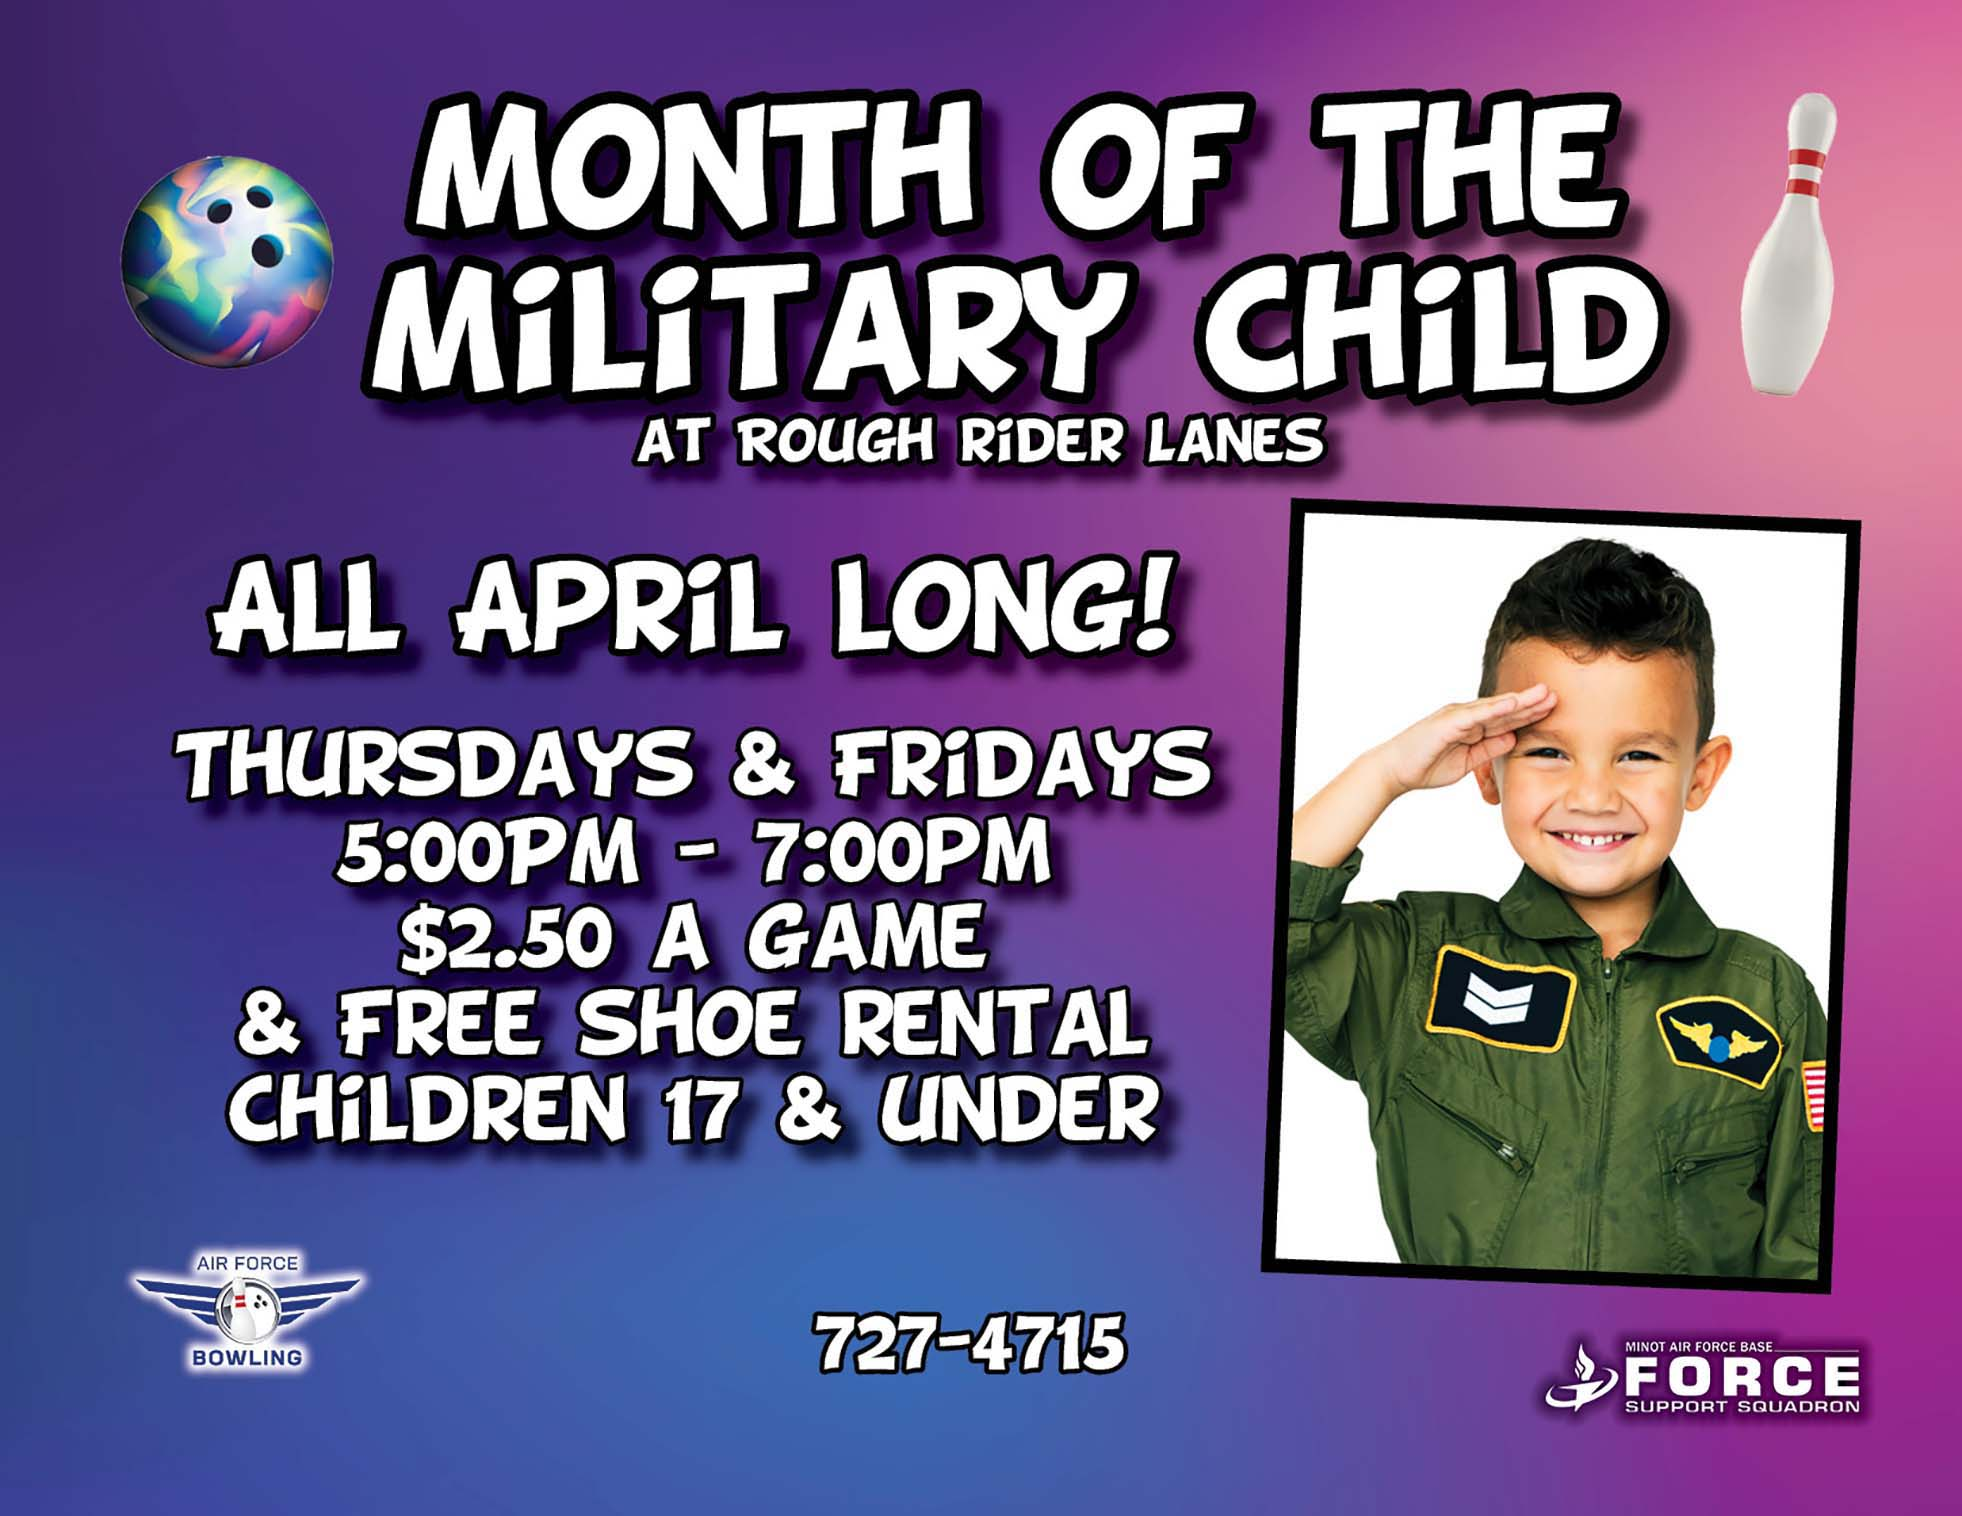 Month of the Military Child Bowl Special- April 21